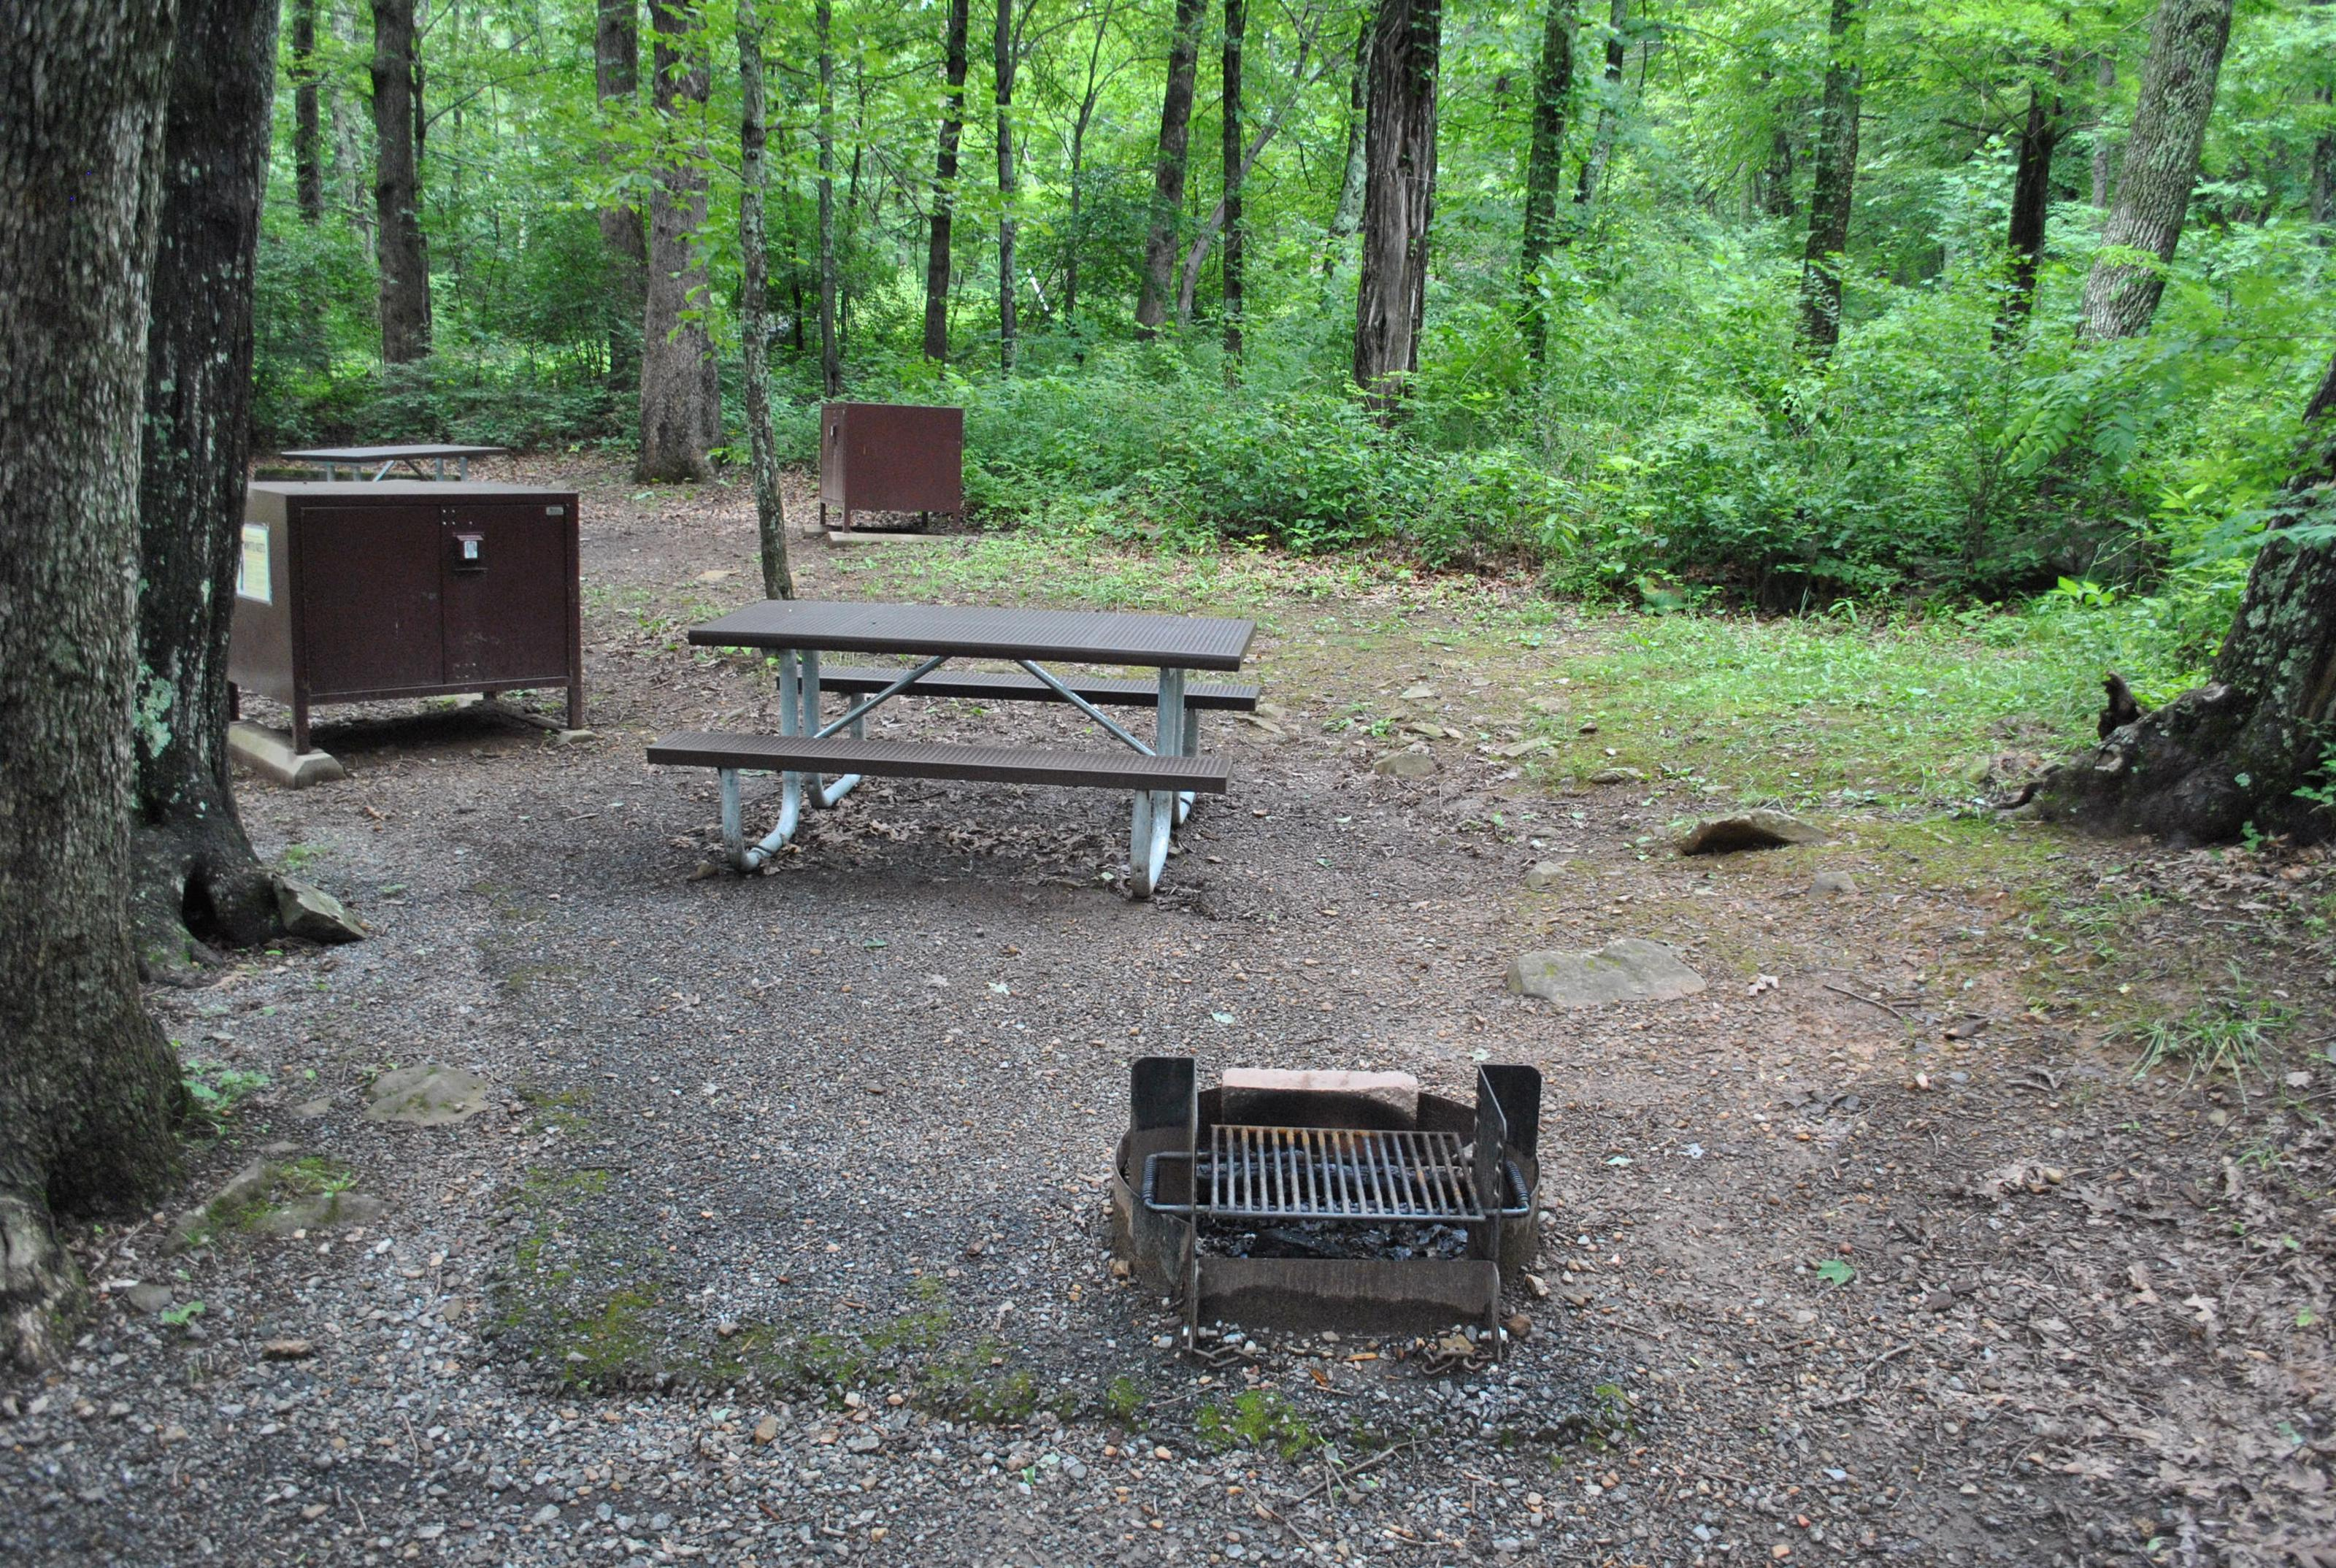 Mathews Arm Campground – Site A116